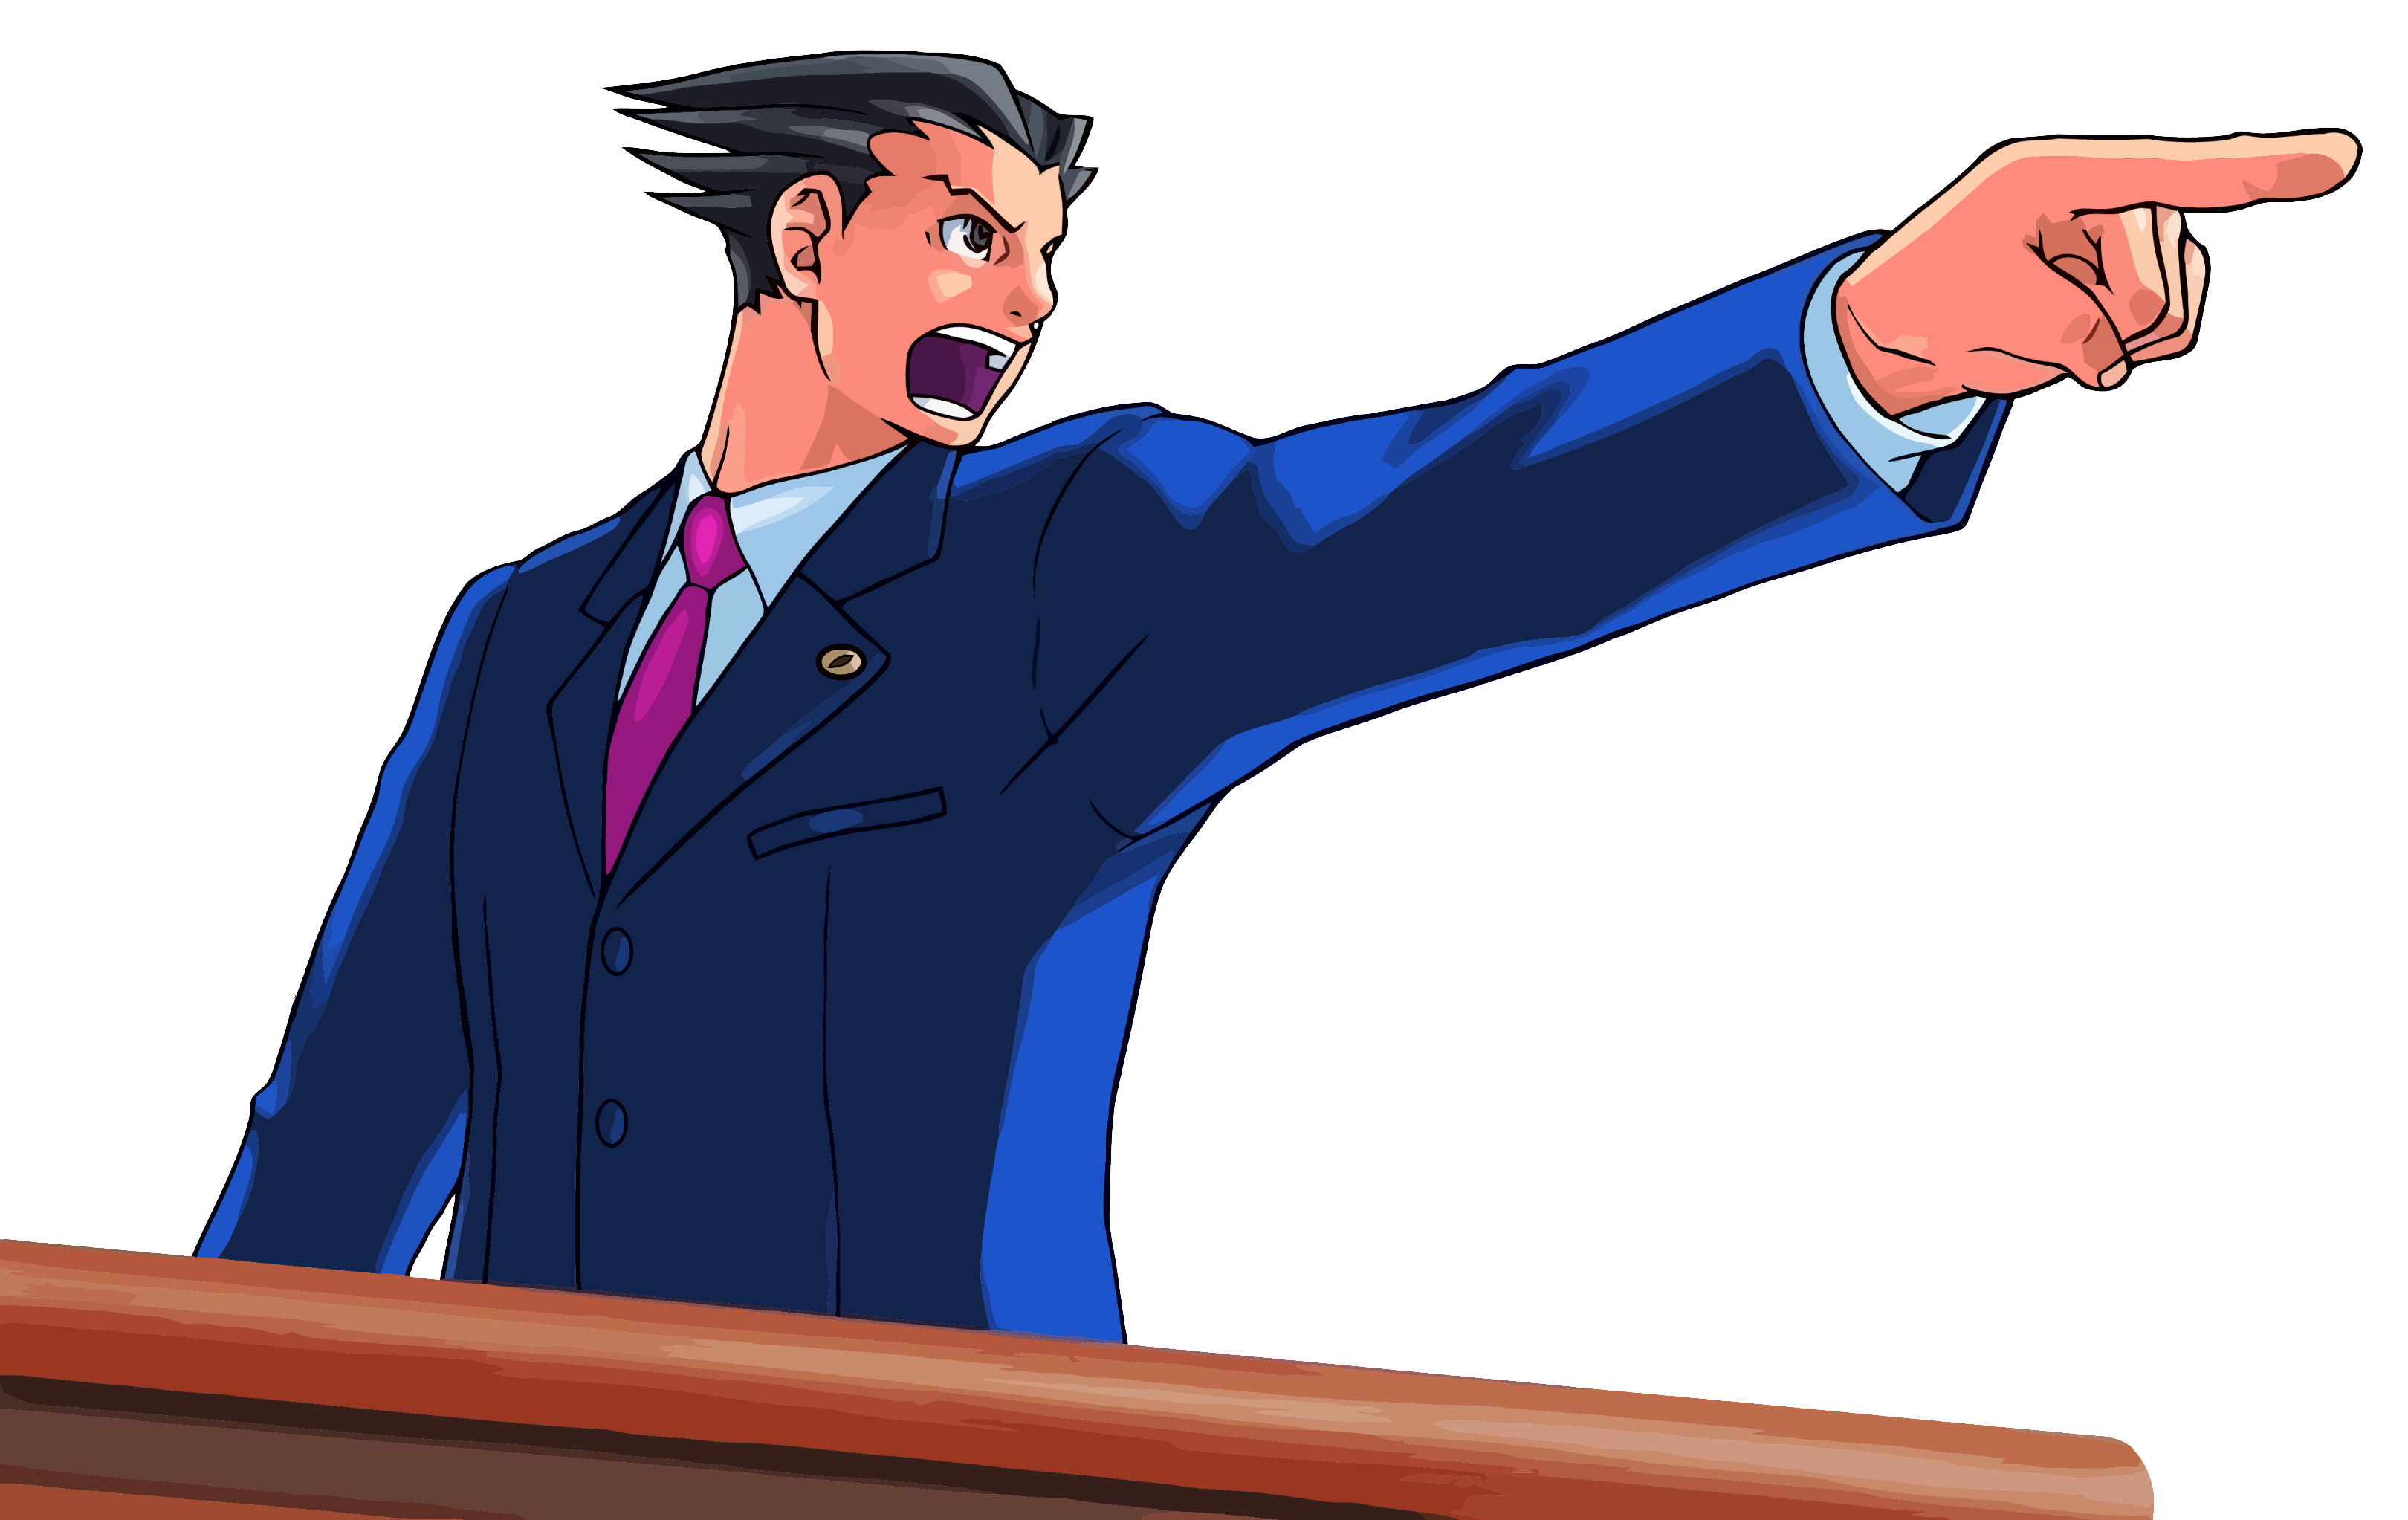 Ace attorney png transparent. Lawyer clipart lawyer cartoon